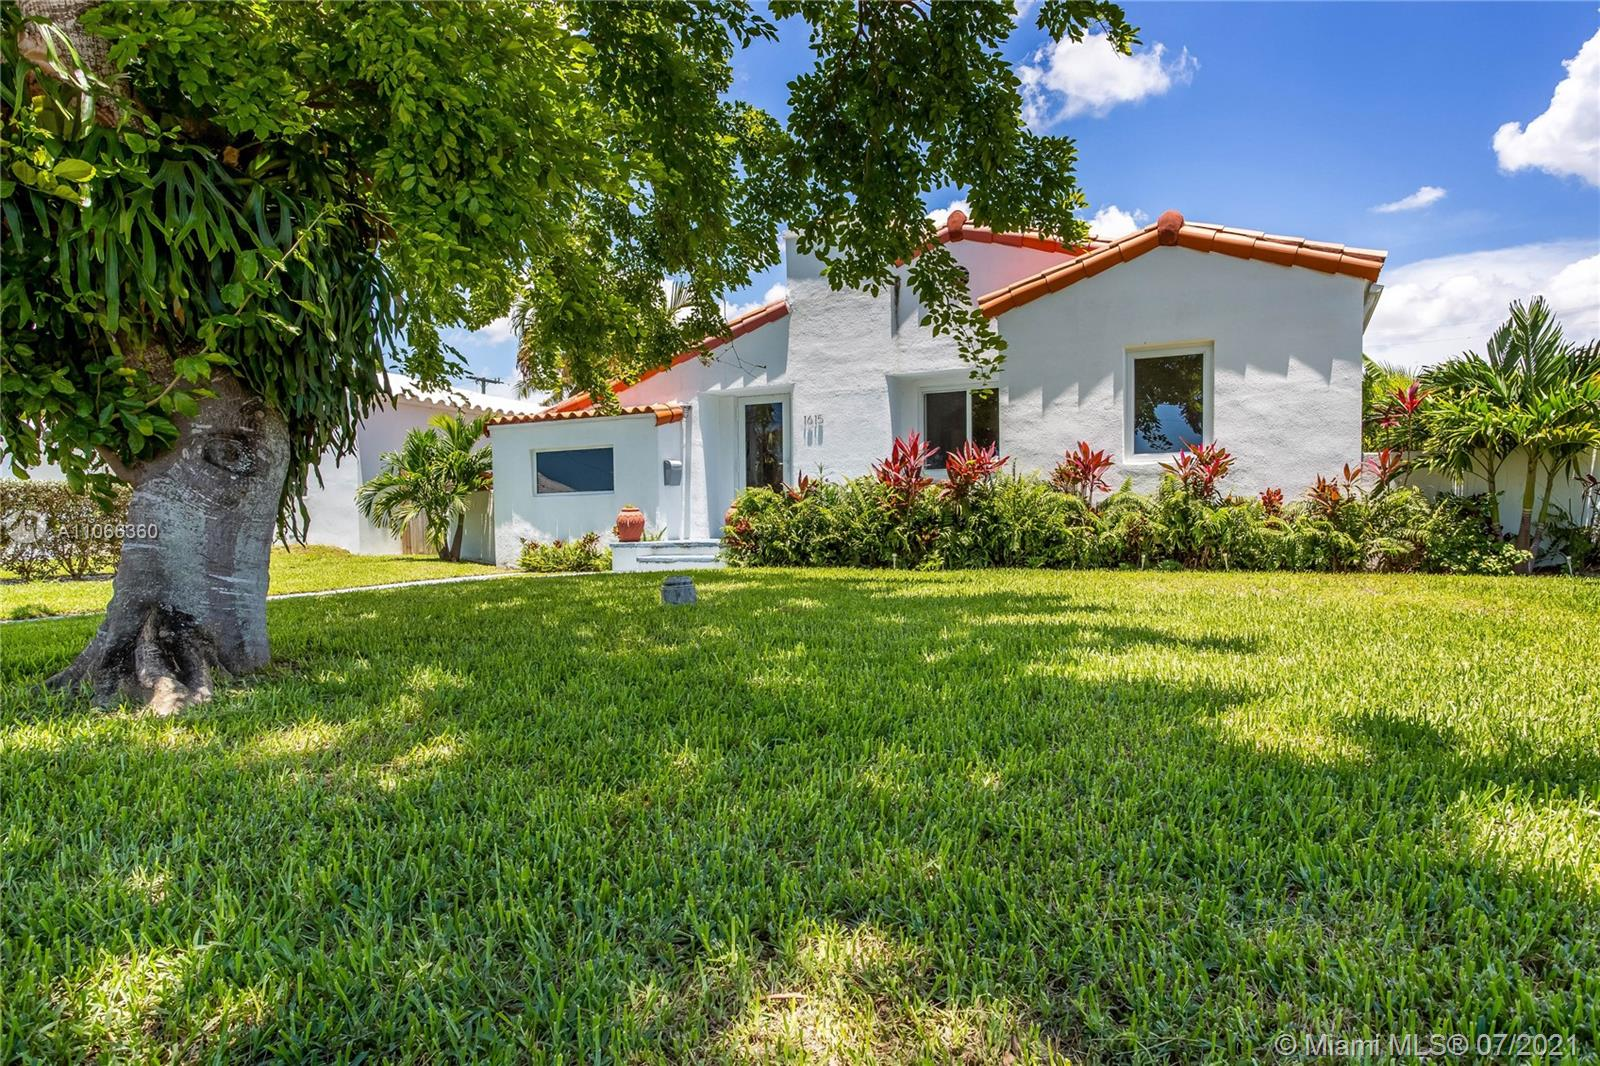 Only a short walk to the ocean! Extremely quiet, private, family-friendly street. Bright and open Miami Beach home with high vaulted ceilings in the entry living room. Located in the desirable Normandy Isles neighborhood. The property features a large open-flowing layout which makes this home perfect to entertain. Beautiful, open, white kitchen with stainless steel appliances. Across the street from waterfront open bay, multi-million dollar properties. Enjoy the lush, large backyard with a charming vegetable garden and Mango tree. Additional info: No HOA; all impact windows; renovated, modern kitchen and baths. Family-friendly community with Normandy Isle Park & Pool a few blocks away.